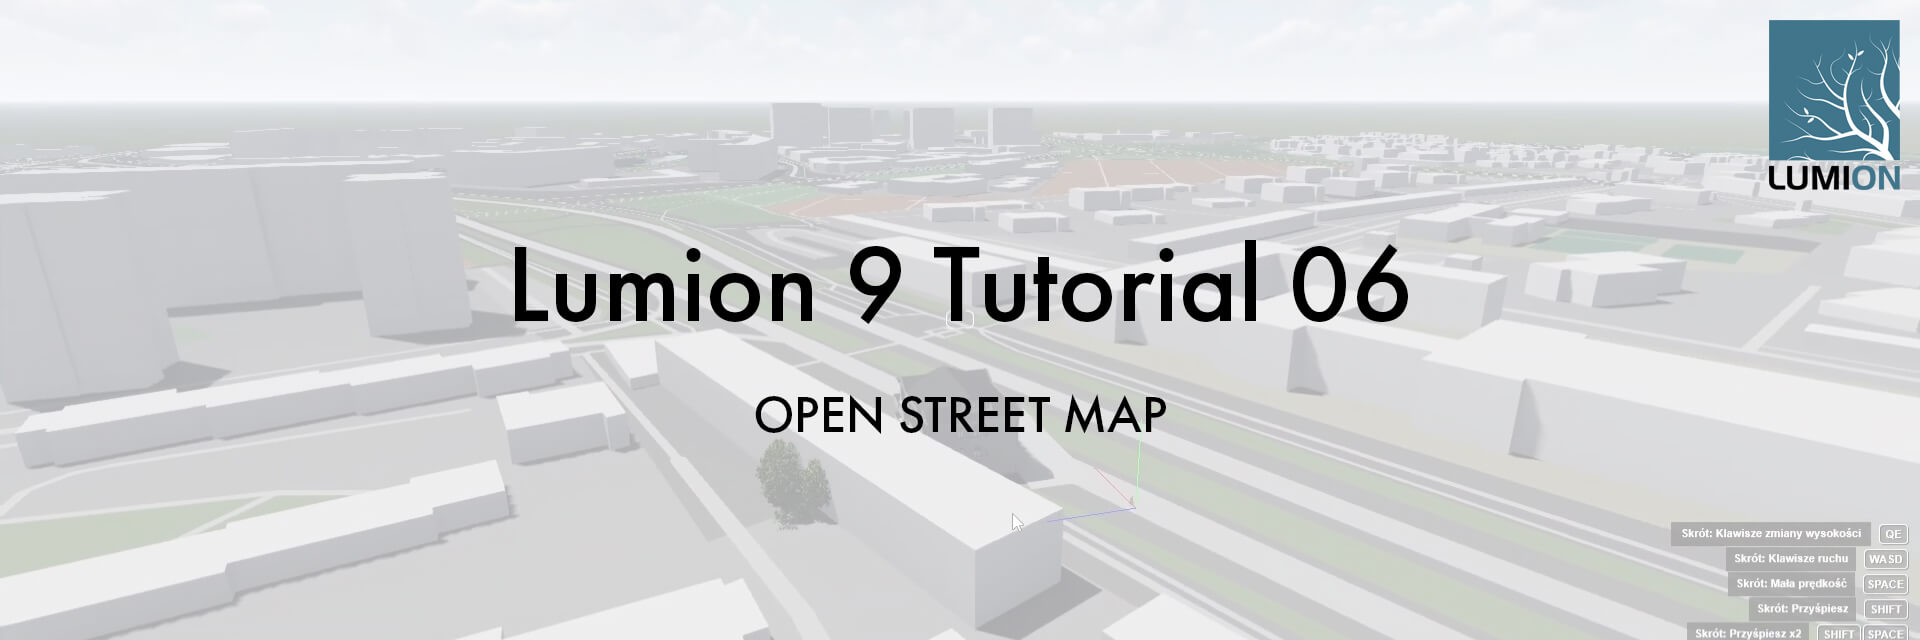 T06 ST - Lumion 9 Tutorial 06 OPEN STREET MAP